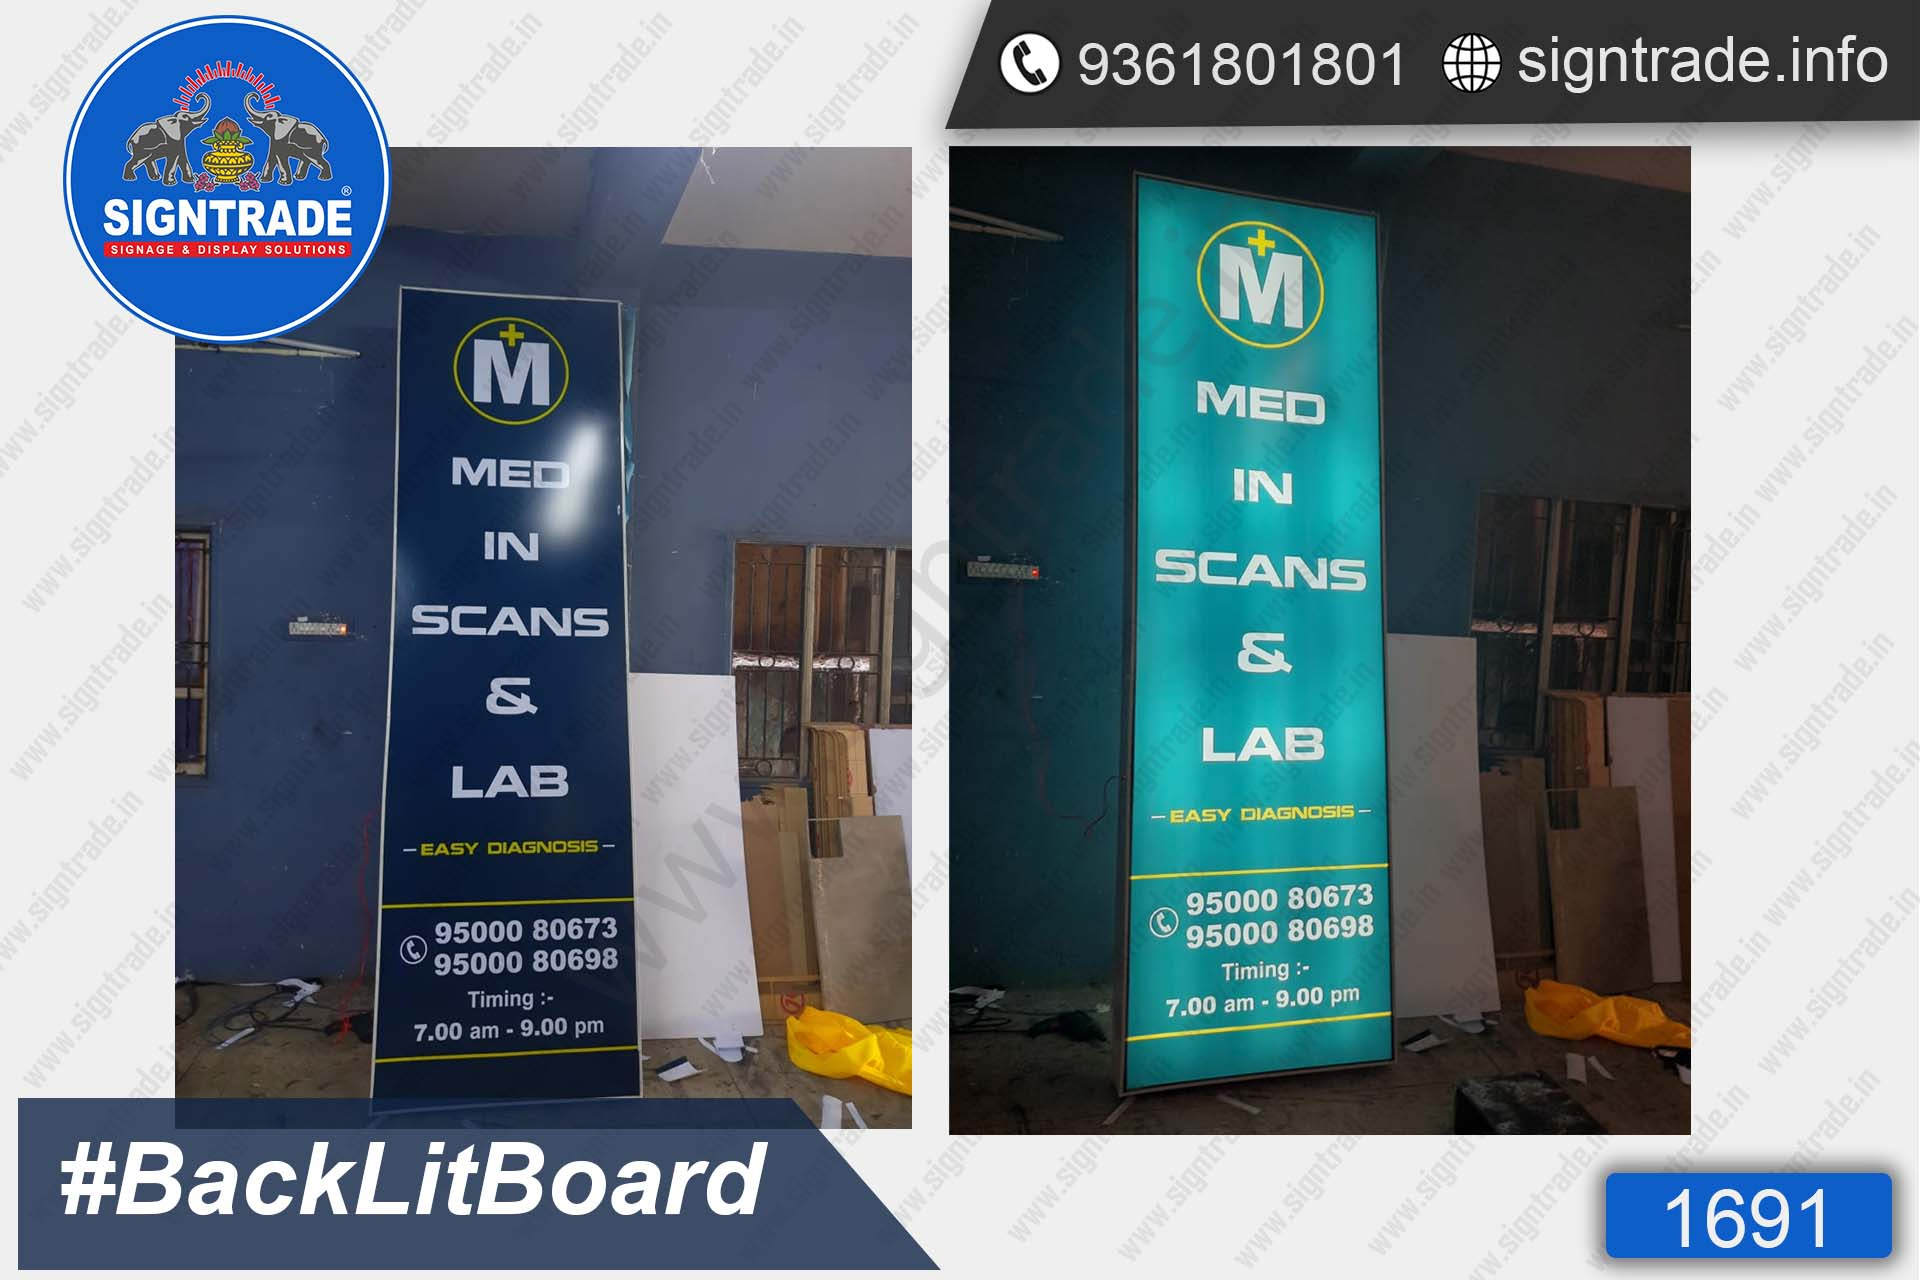 MED in Scans & Lab, Chennai - SIGNTRADE - Backlit Board Manufacturers in Chennai